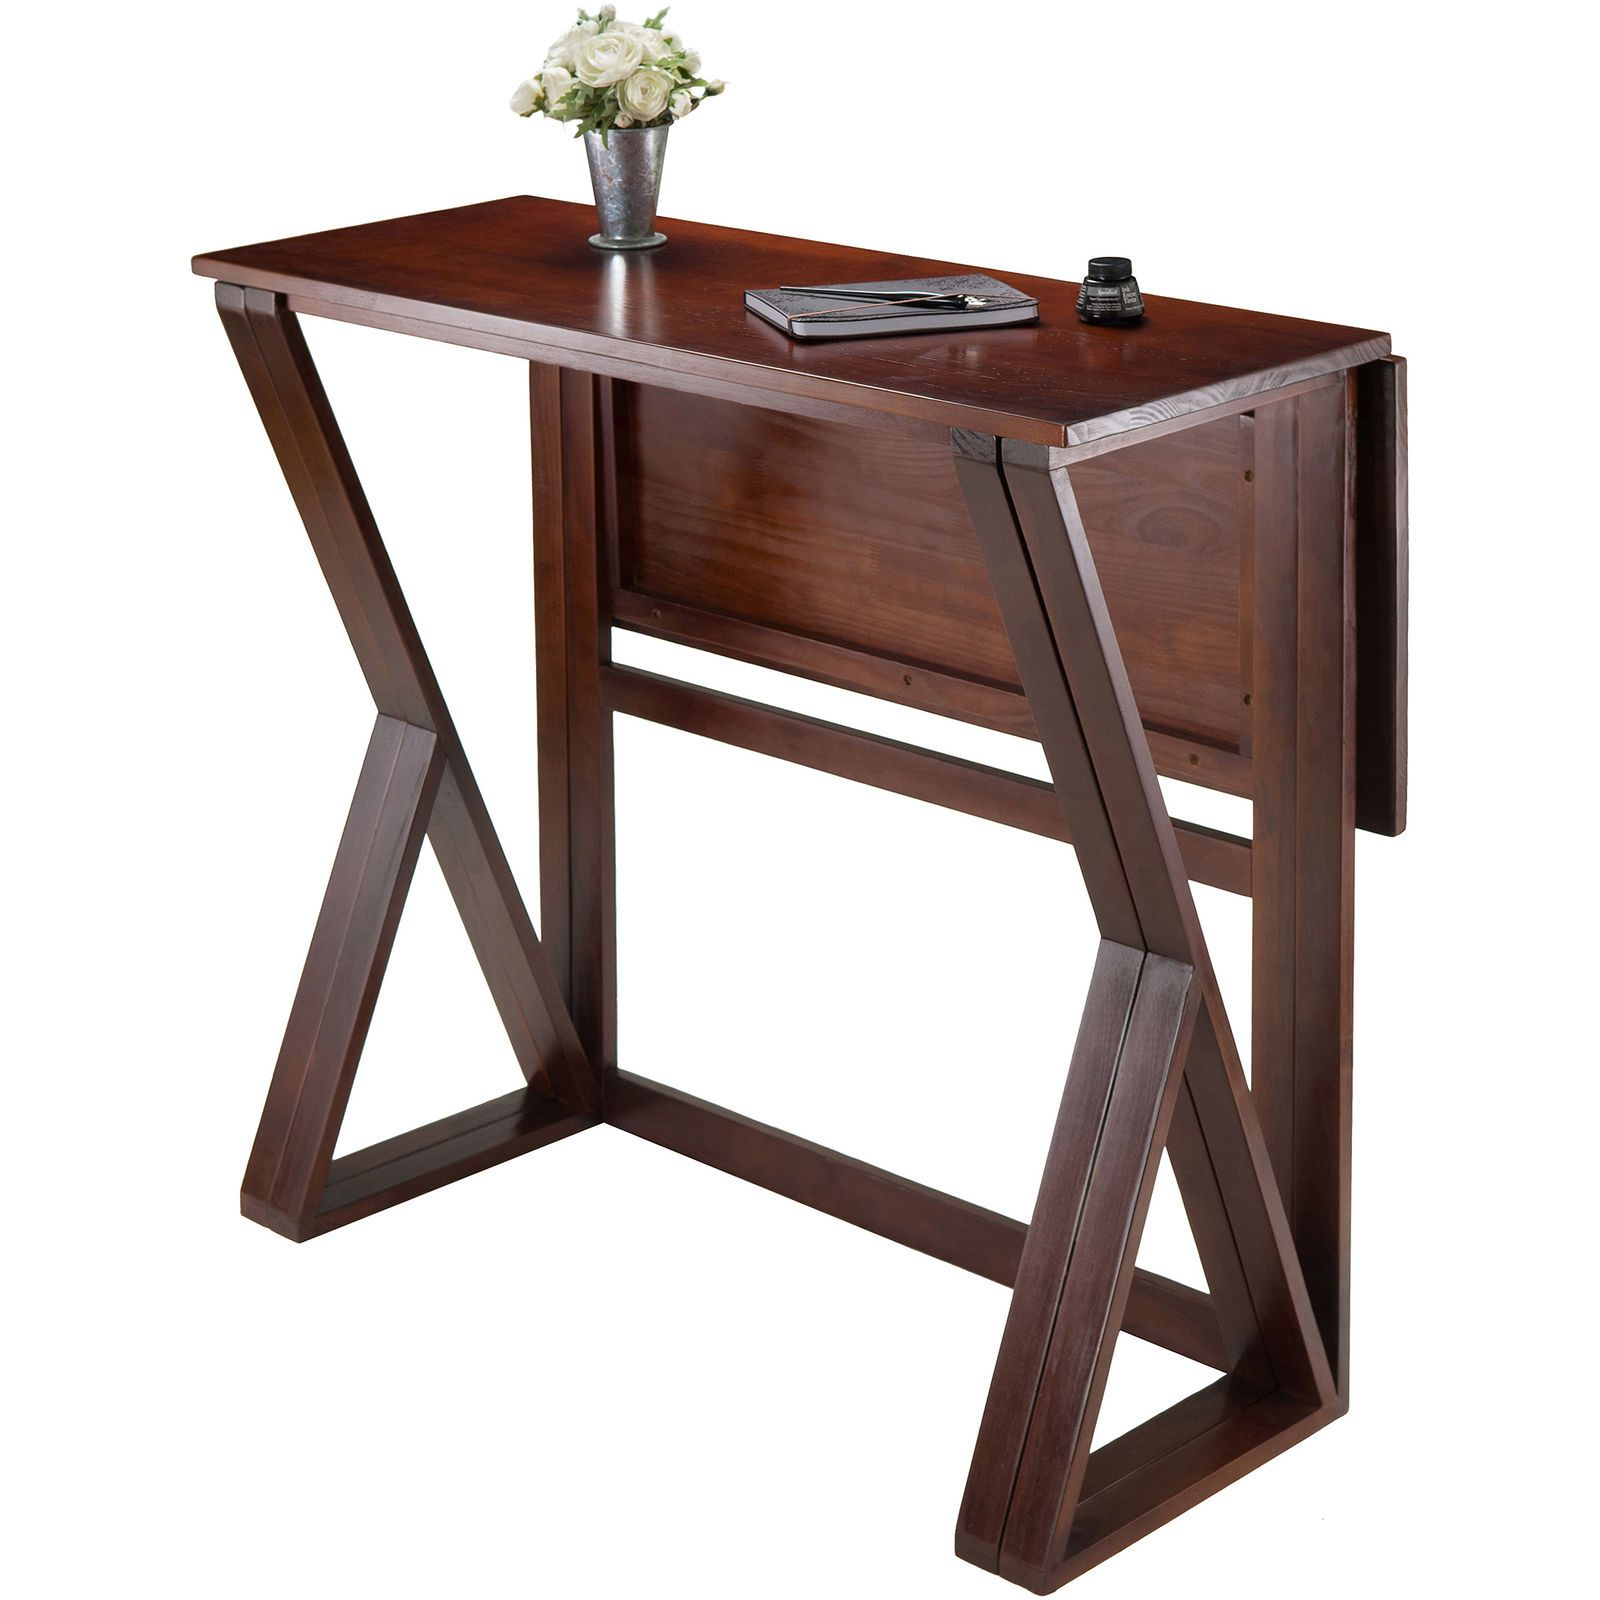 Dual Drop Leaf Dining Table High Solid Wood Home Kitchen Small Spaces Walnut Set Ebay With Images Counter Height Dining Table Drop Leaf Dining Table